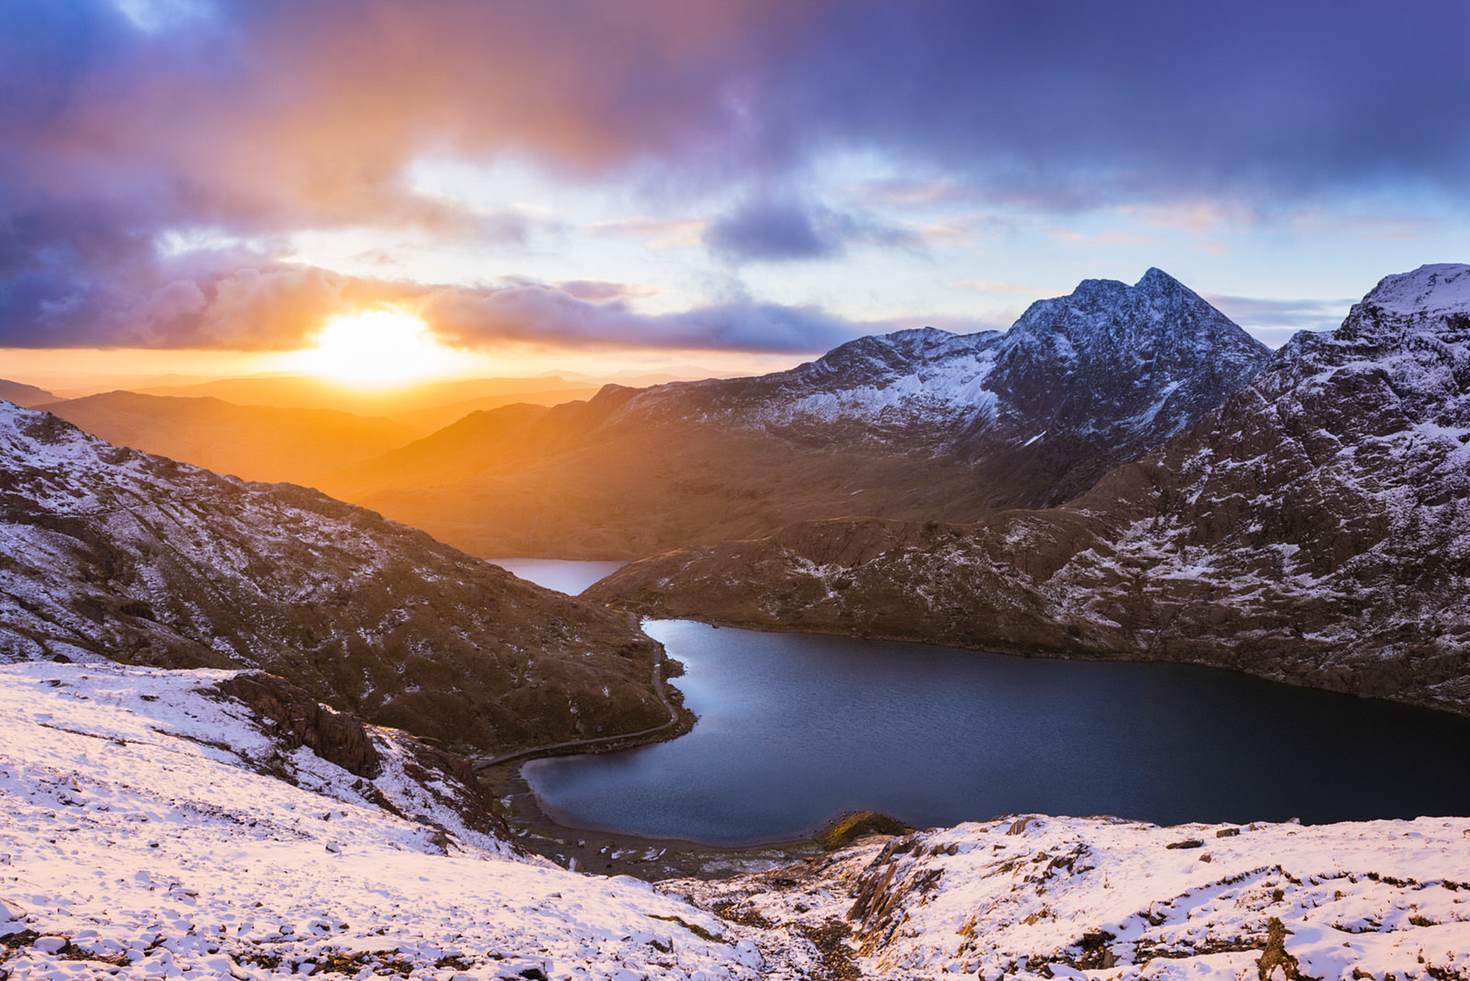 The mountain of Y Lliwedd at sunrise – a training spot for George Mallory and the 1953 British Mount Everest expedition © Justin Foulkes / Lonely Planet